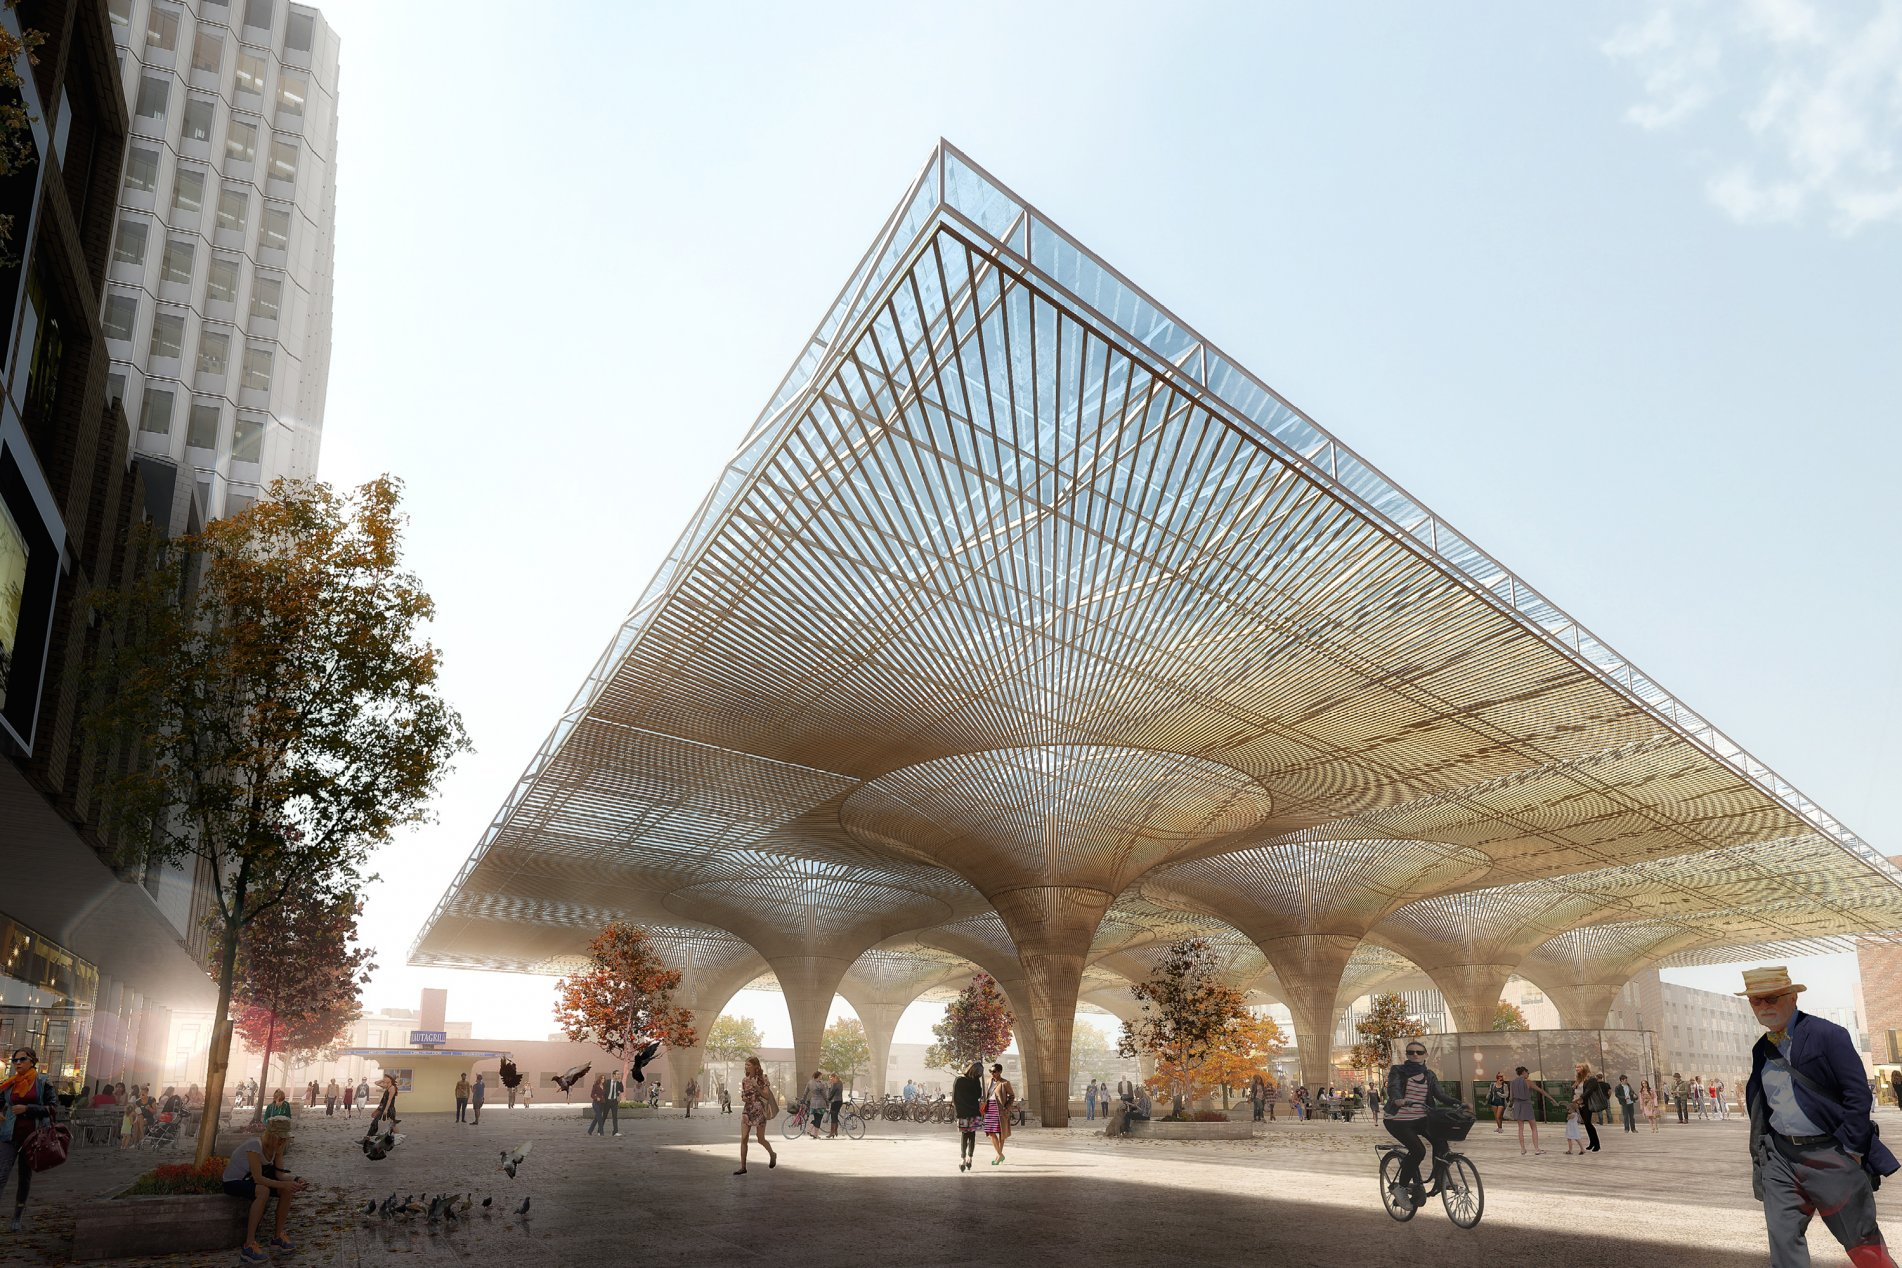 Lunden Architecture Company & COBE_Tampere_Travel_and_Service_Center__station_plaza